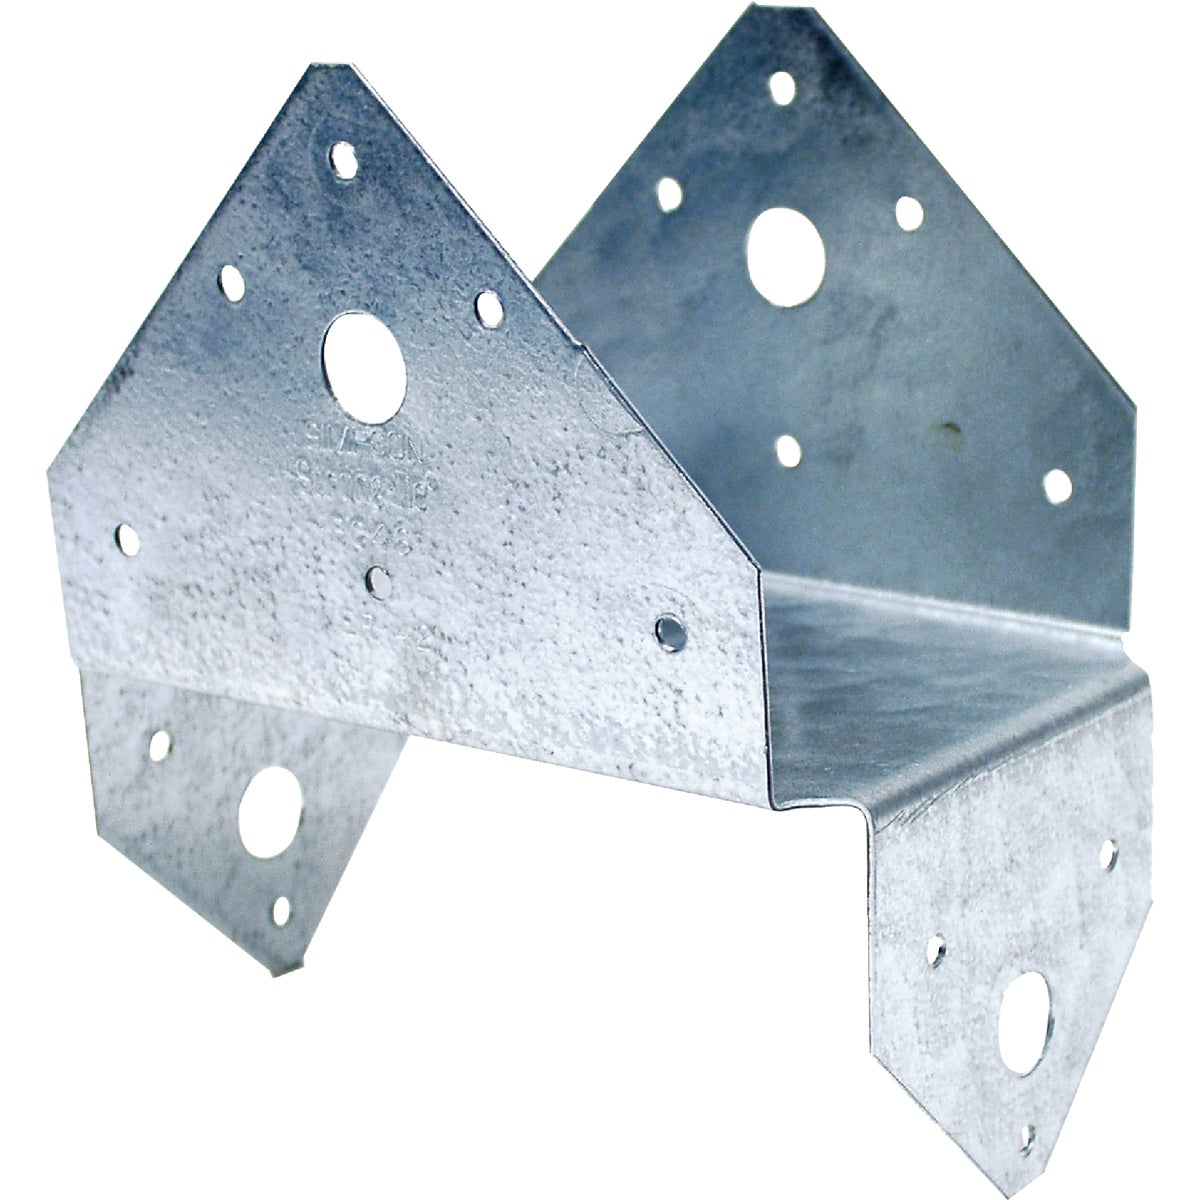 4X6 POST CAP BASE - BC46 by Simpson Strong Tie